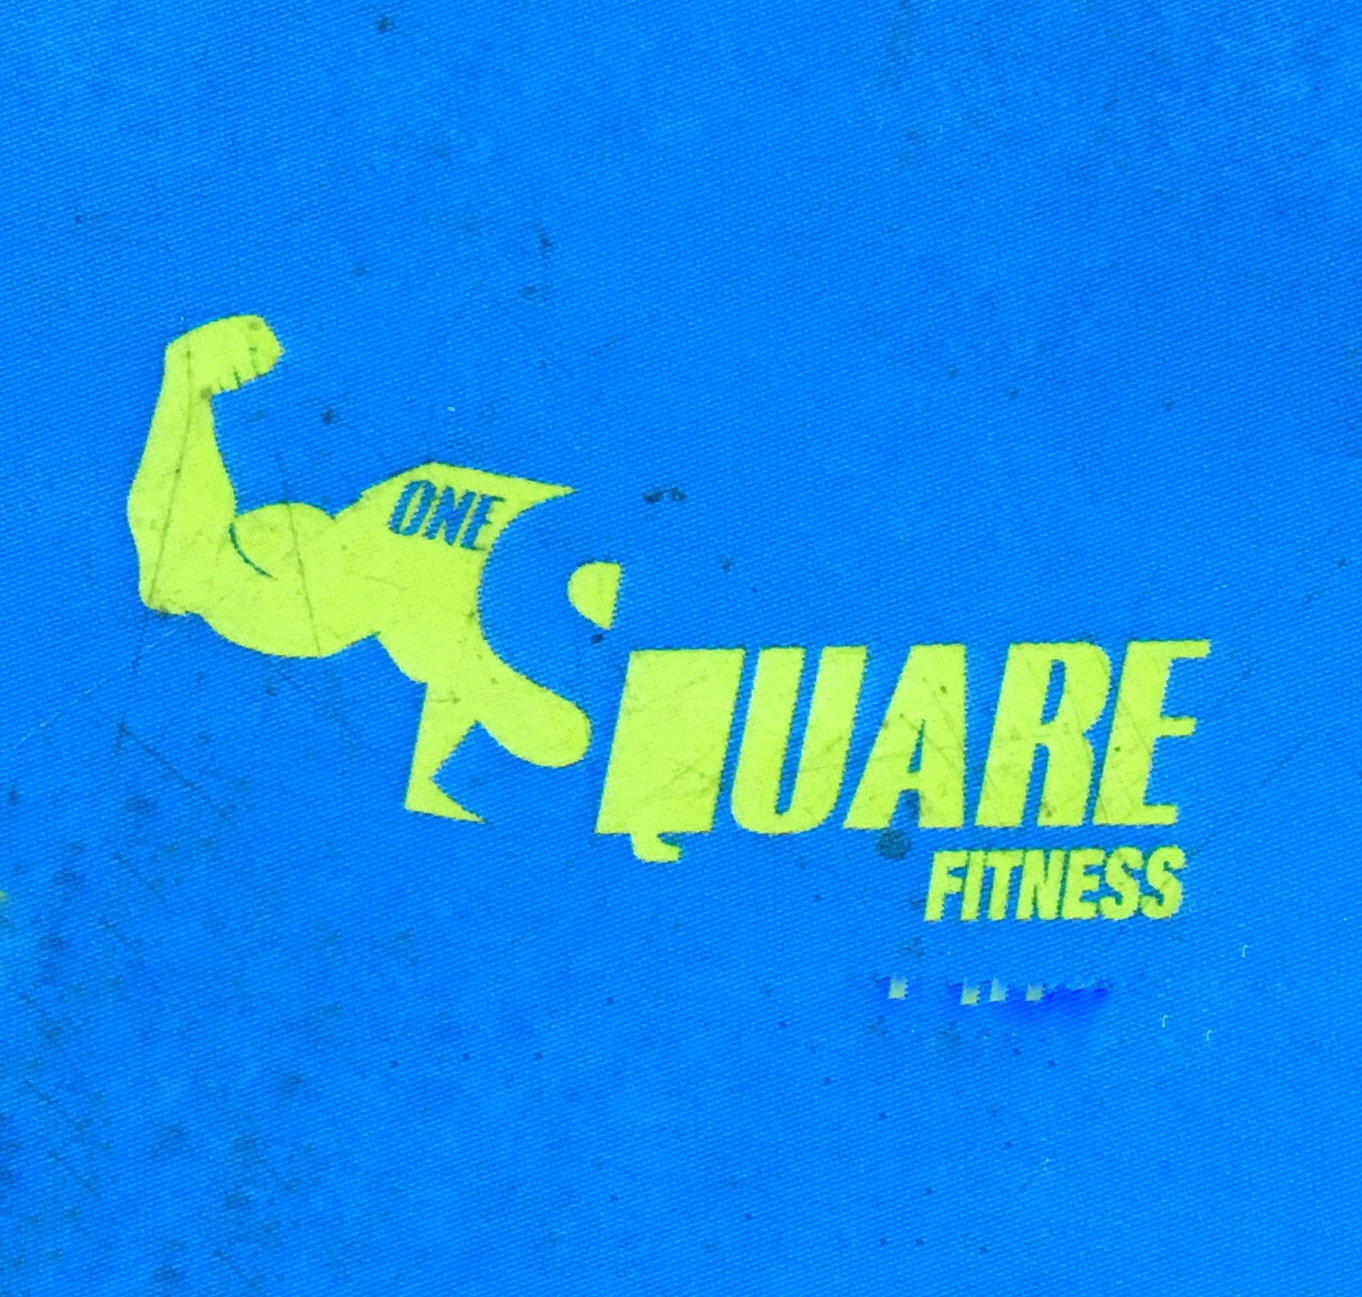 One Square Fitness Nagarbhavi